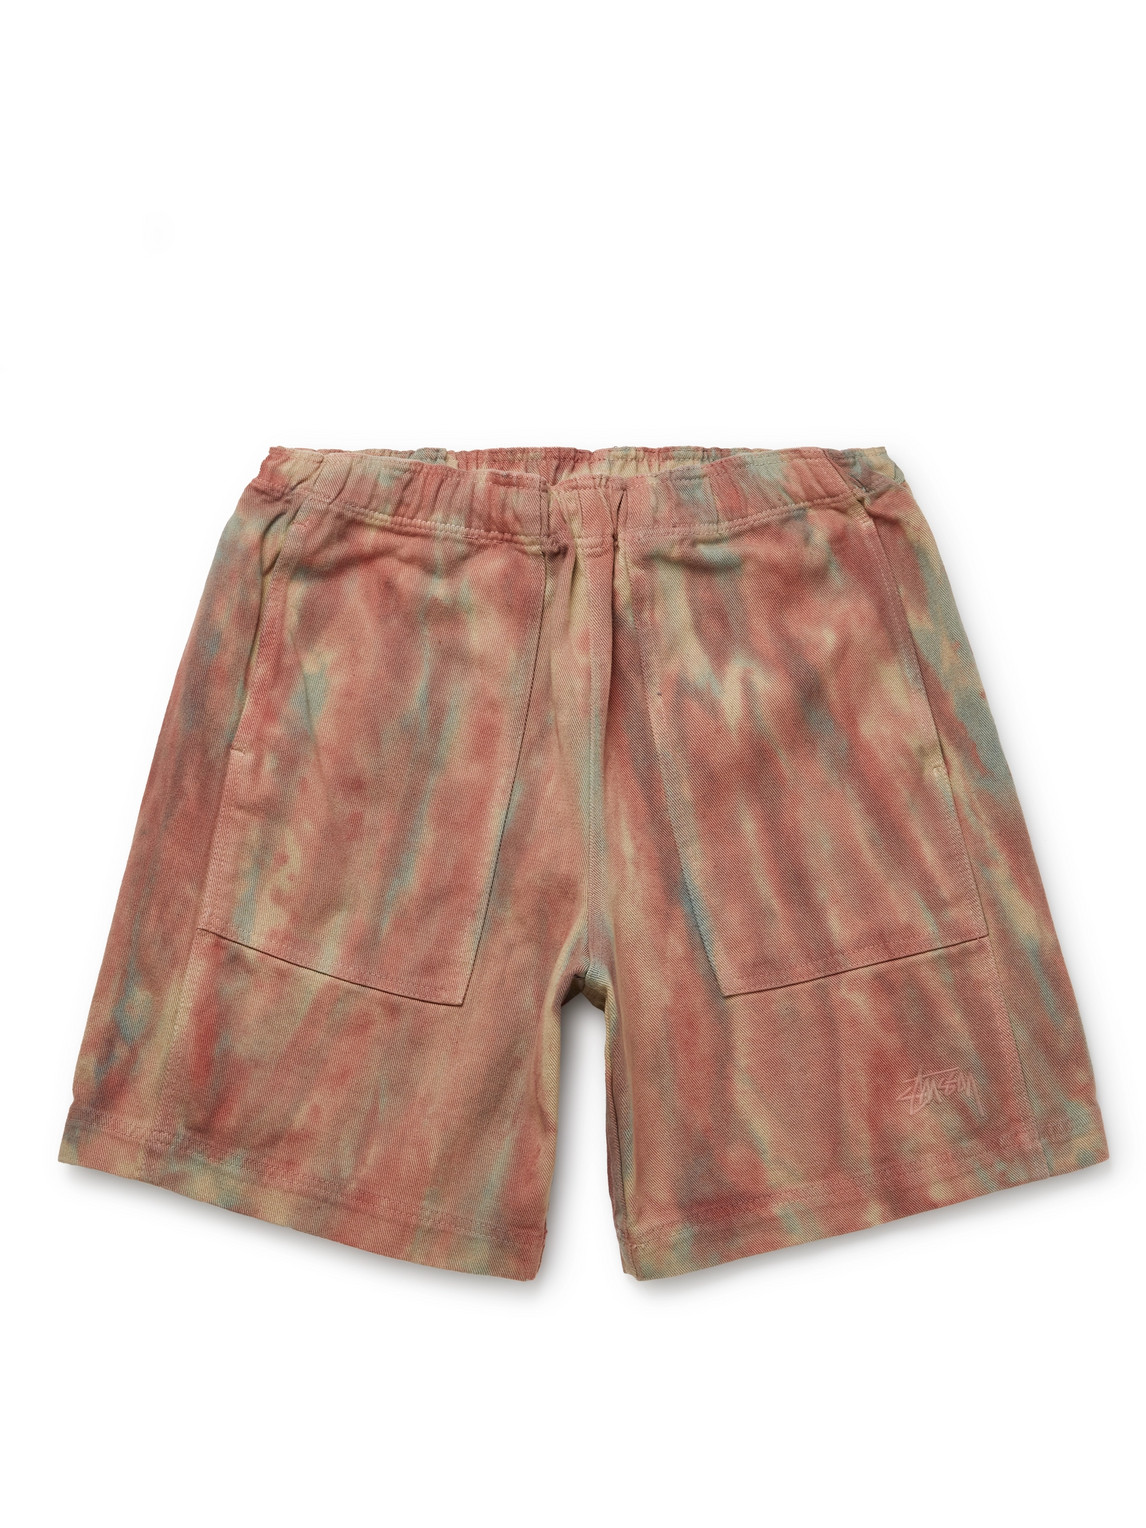 Stussy Cottons LOGO-EMBROIDERED TIE-DYE COTTON-TWILL SHORTS